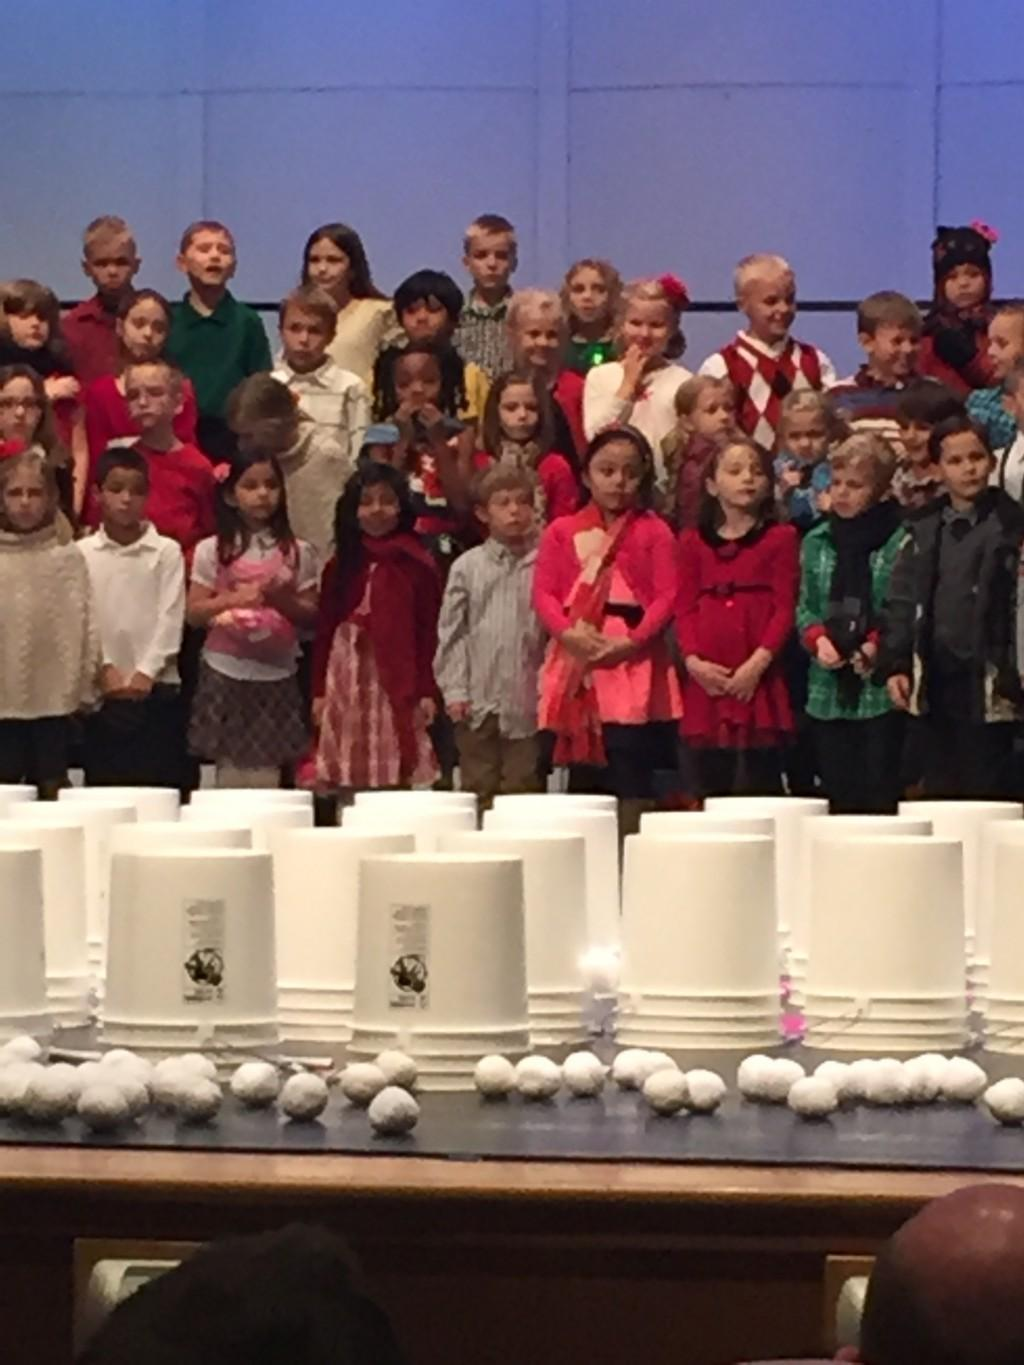 kids on stage ready to sing